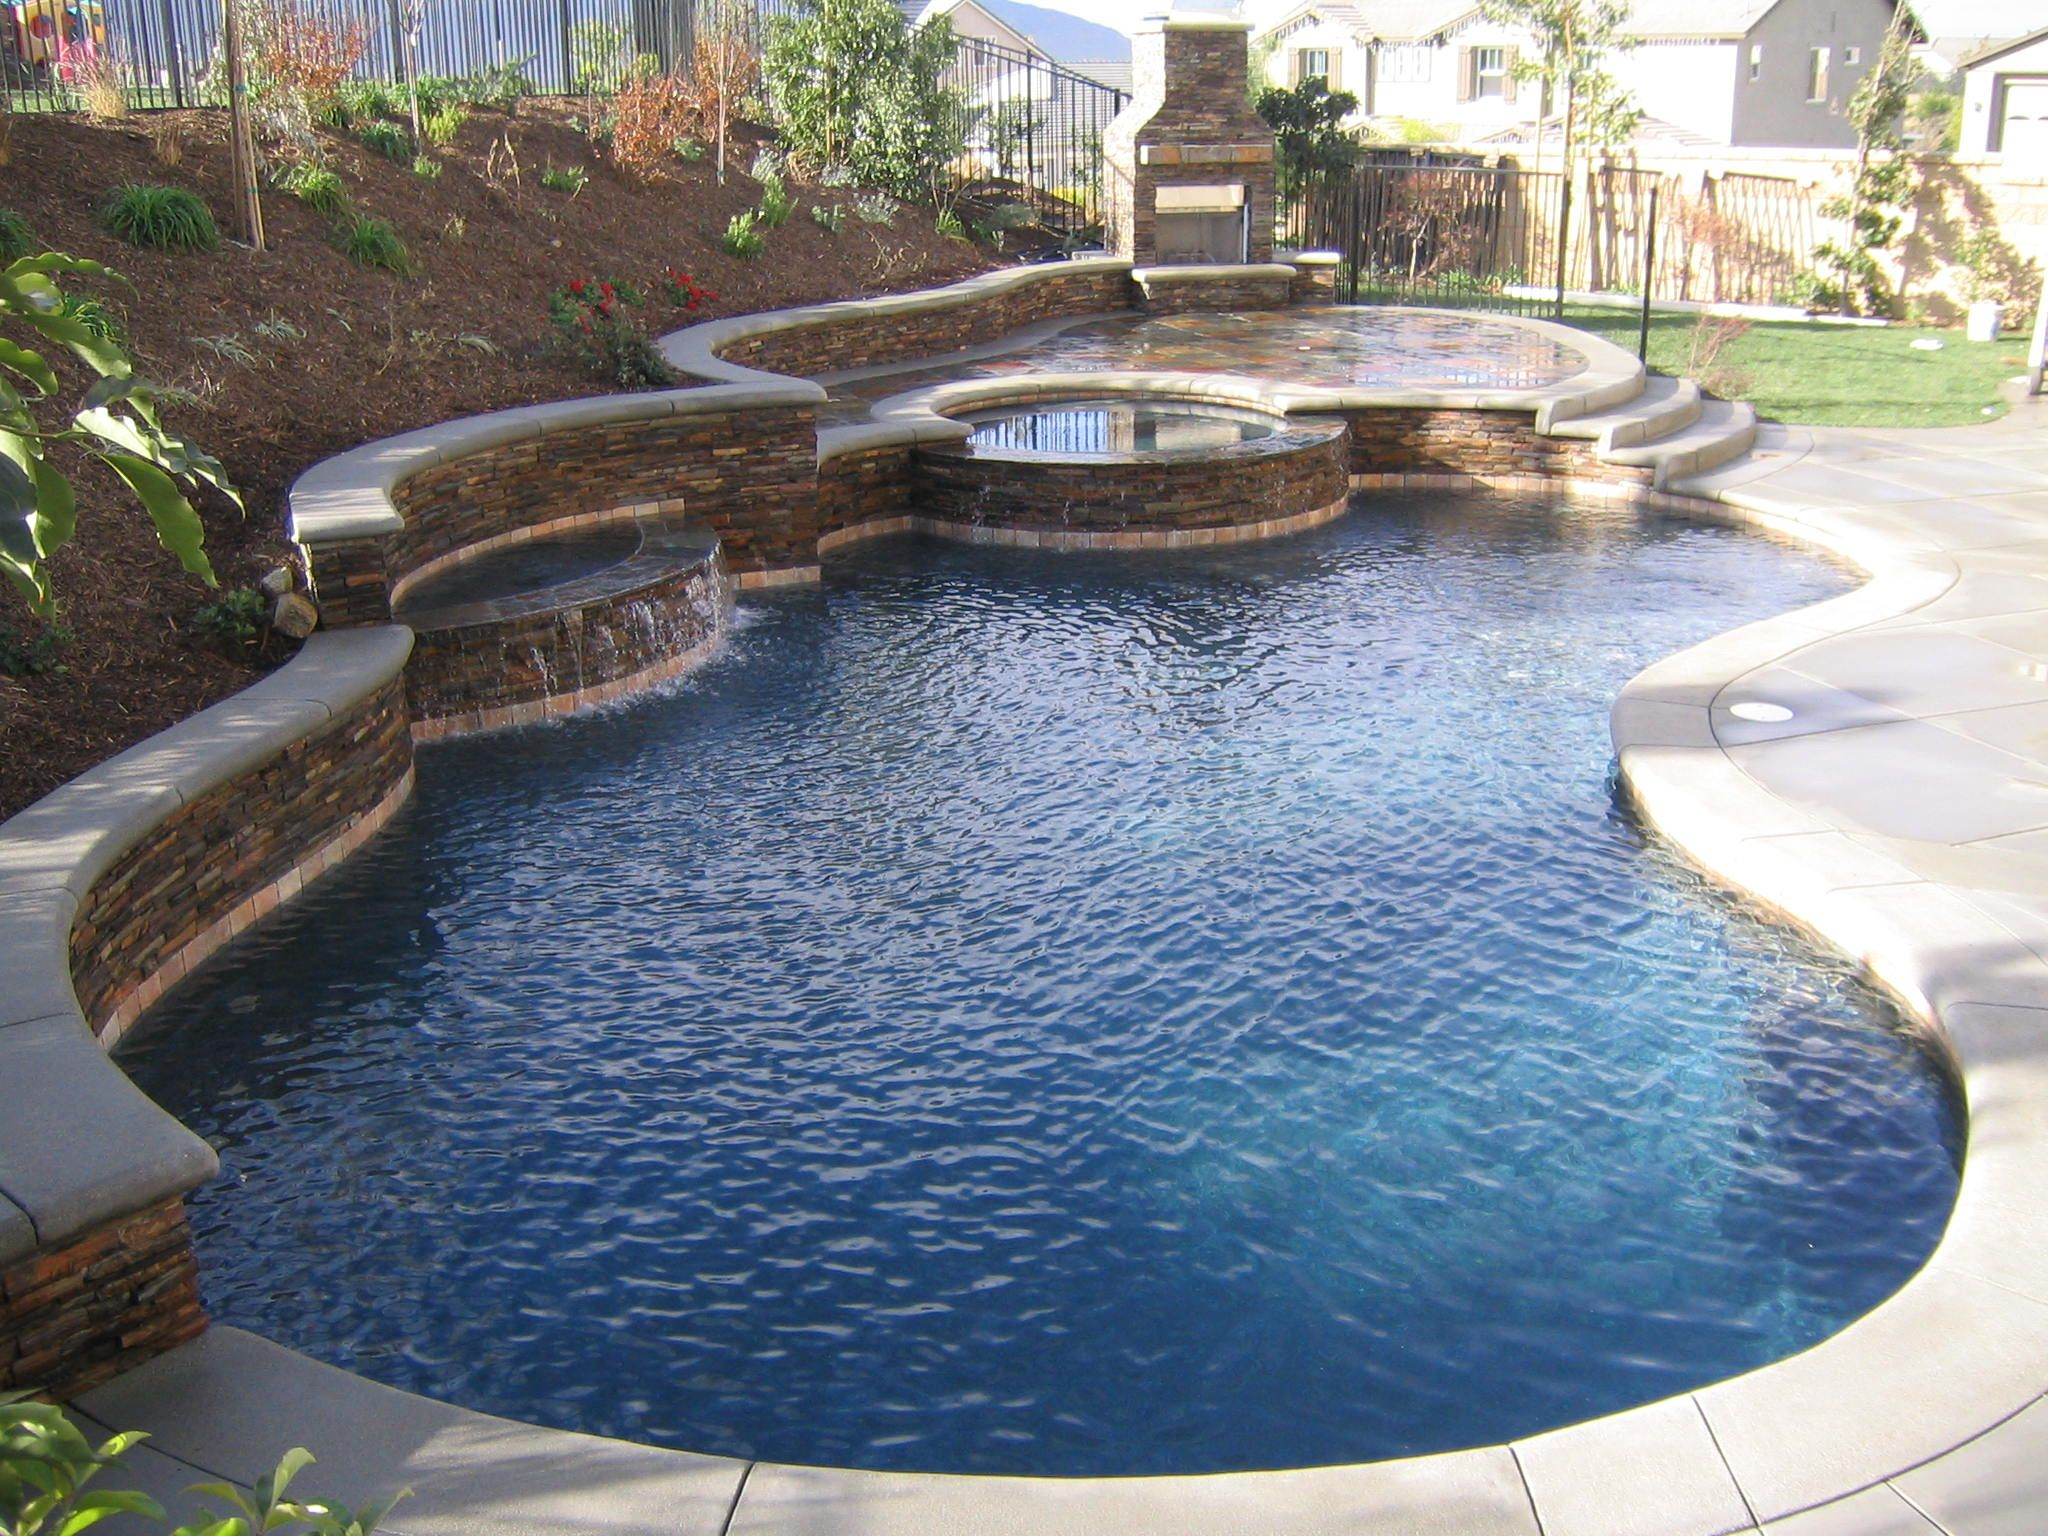 Pools For Small Backyards   Backyard Ideas on Backyard Pool And Landscaping Ideas id=45307